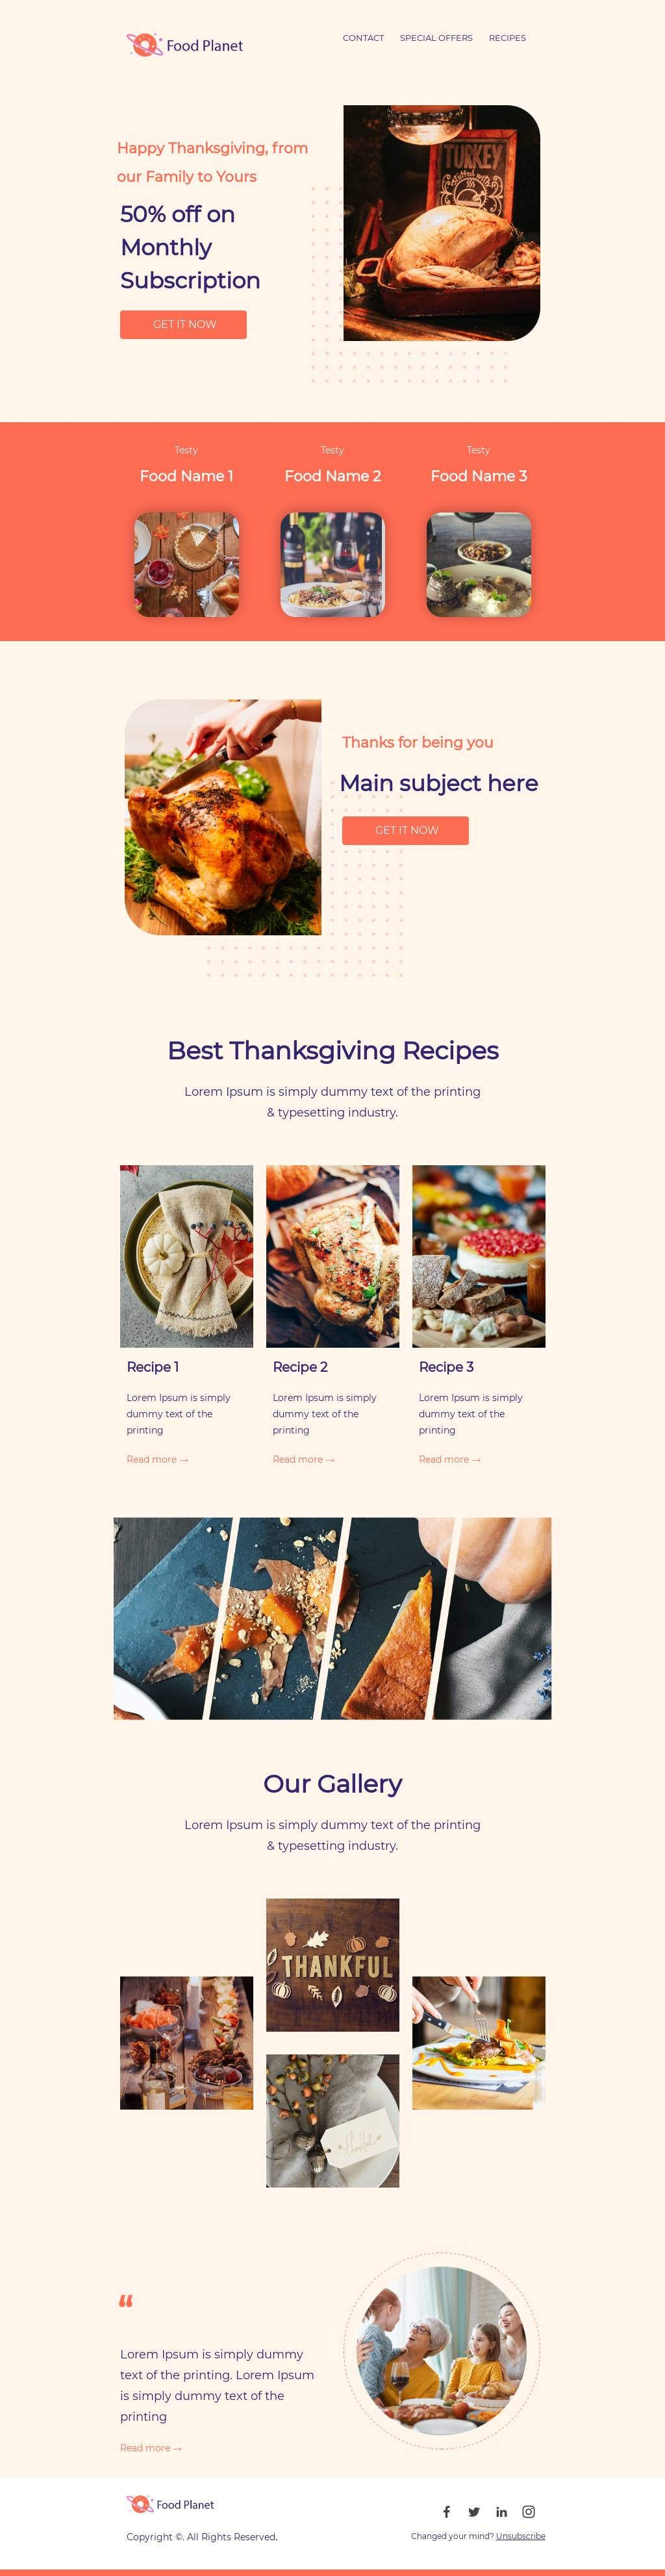 Template Bee Free In 2020 Email Template Design Email Design Best Thanksgiving Recipes